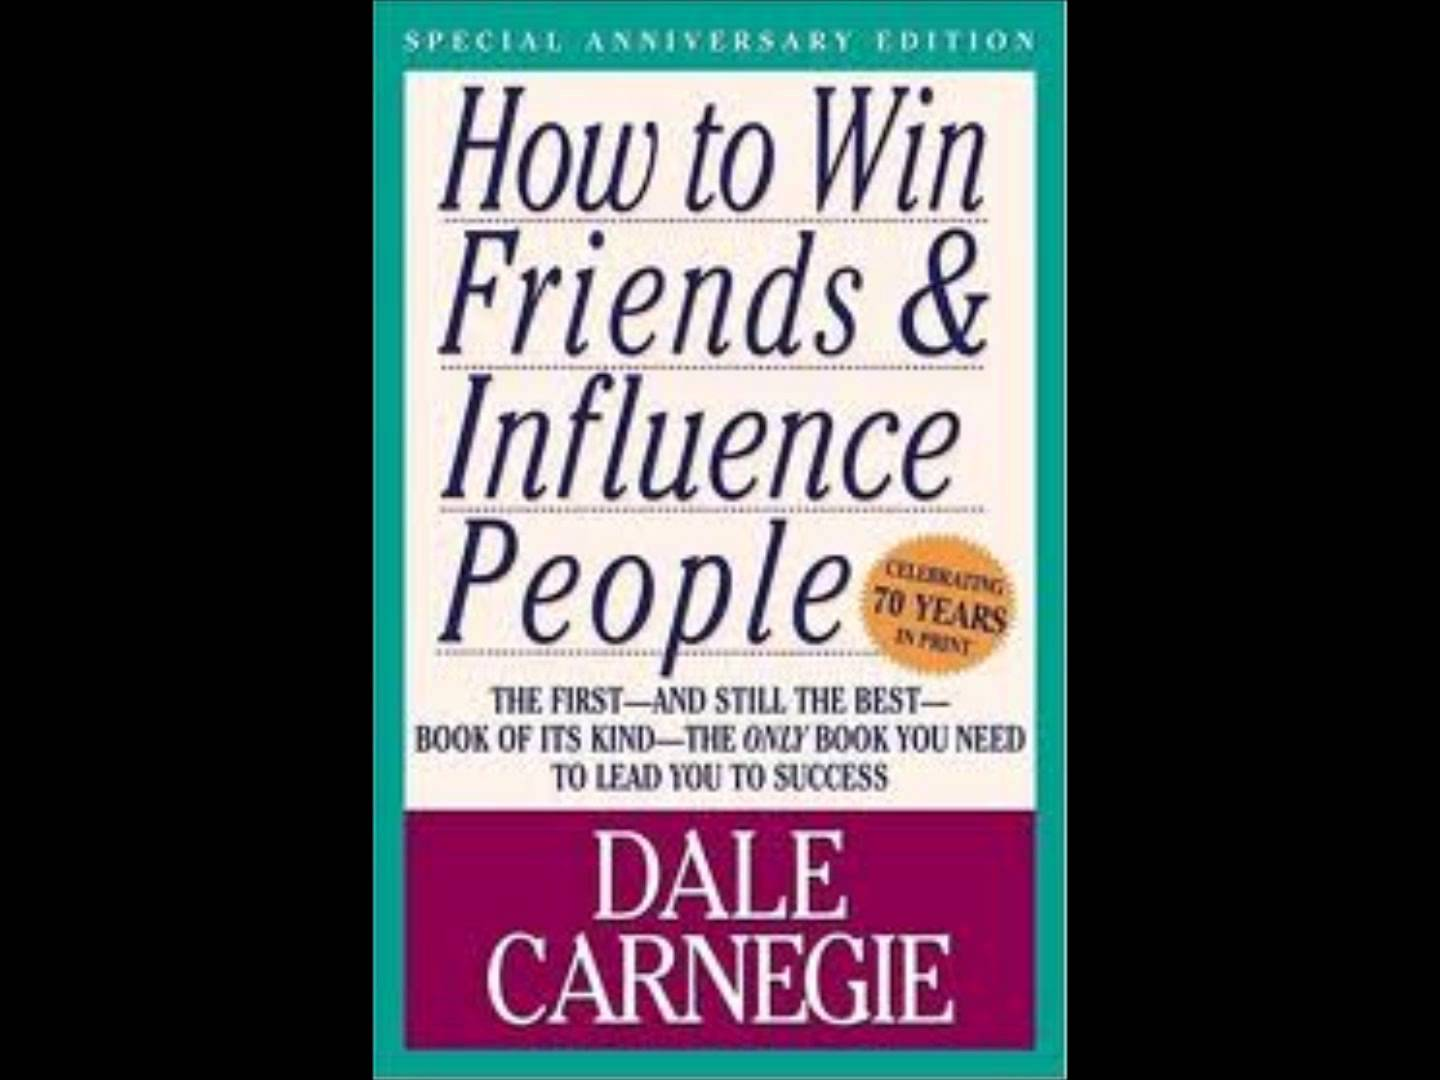 How to win friends and influence people essay